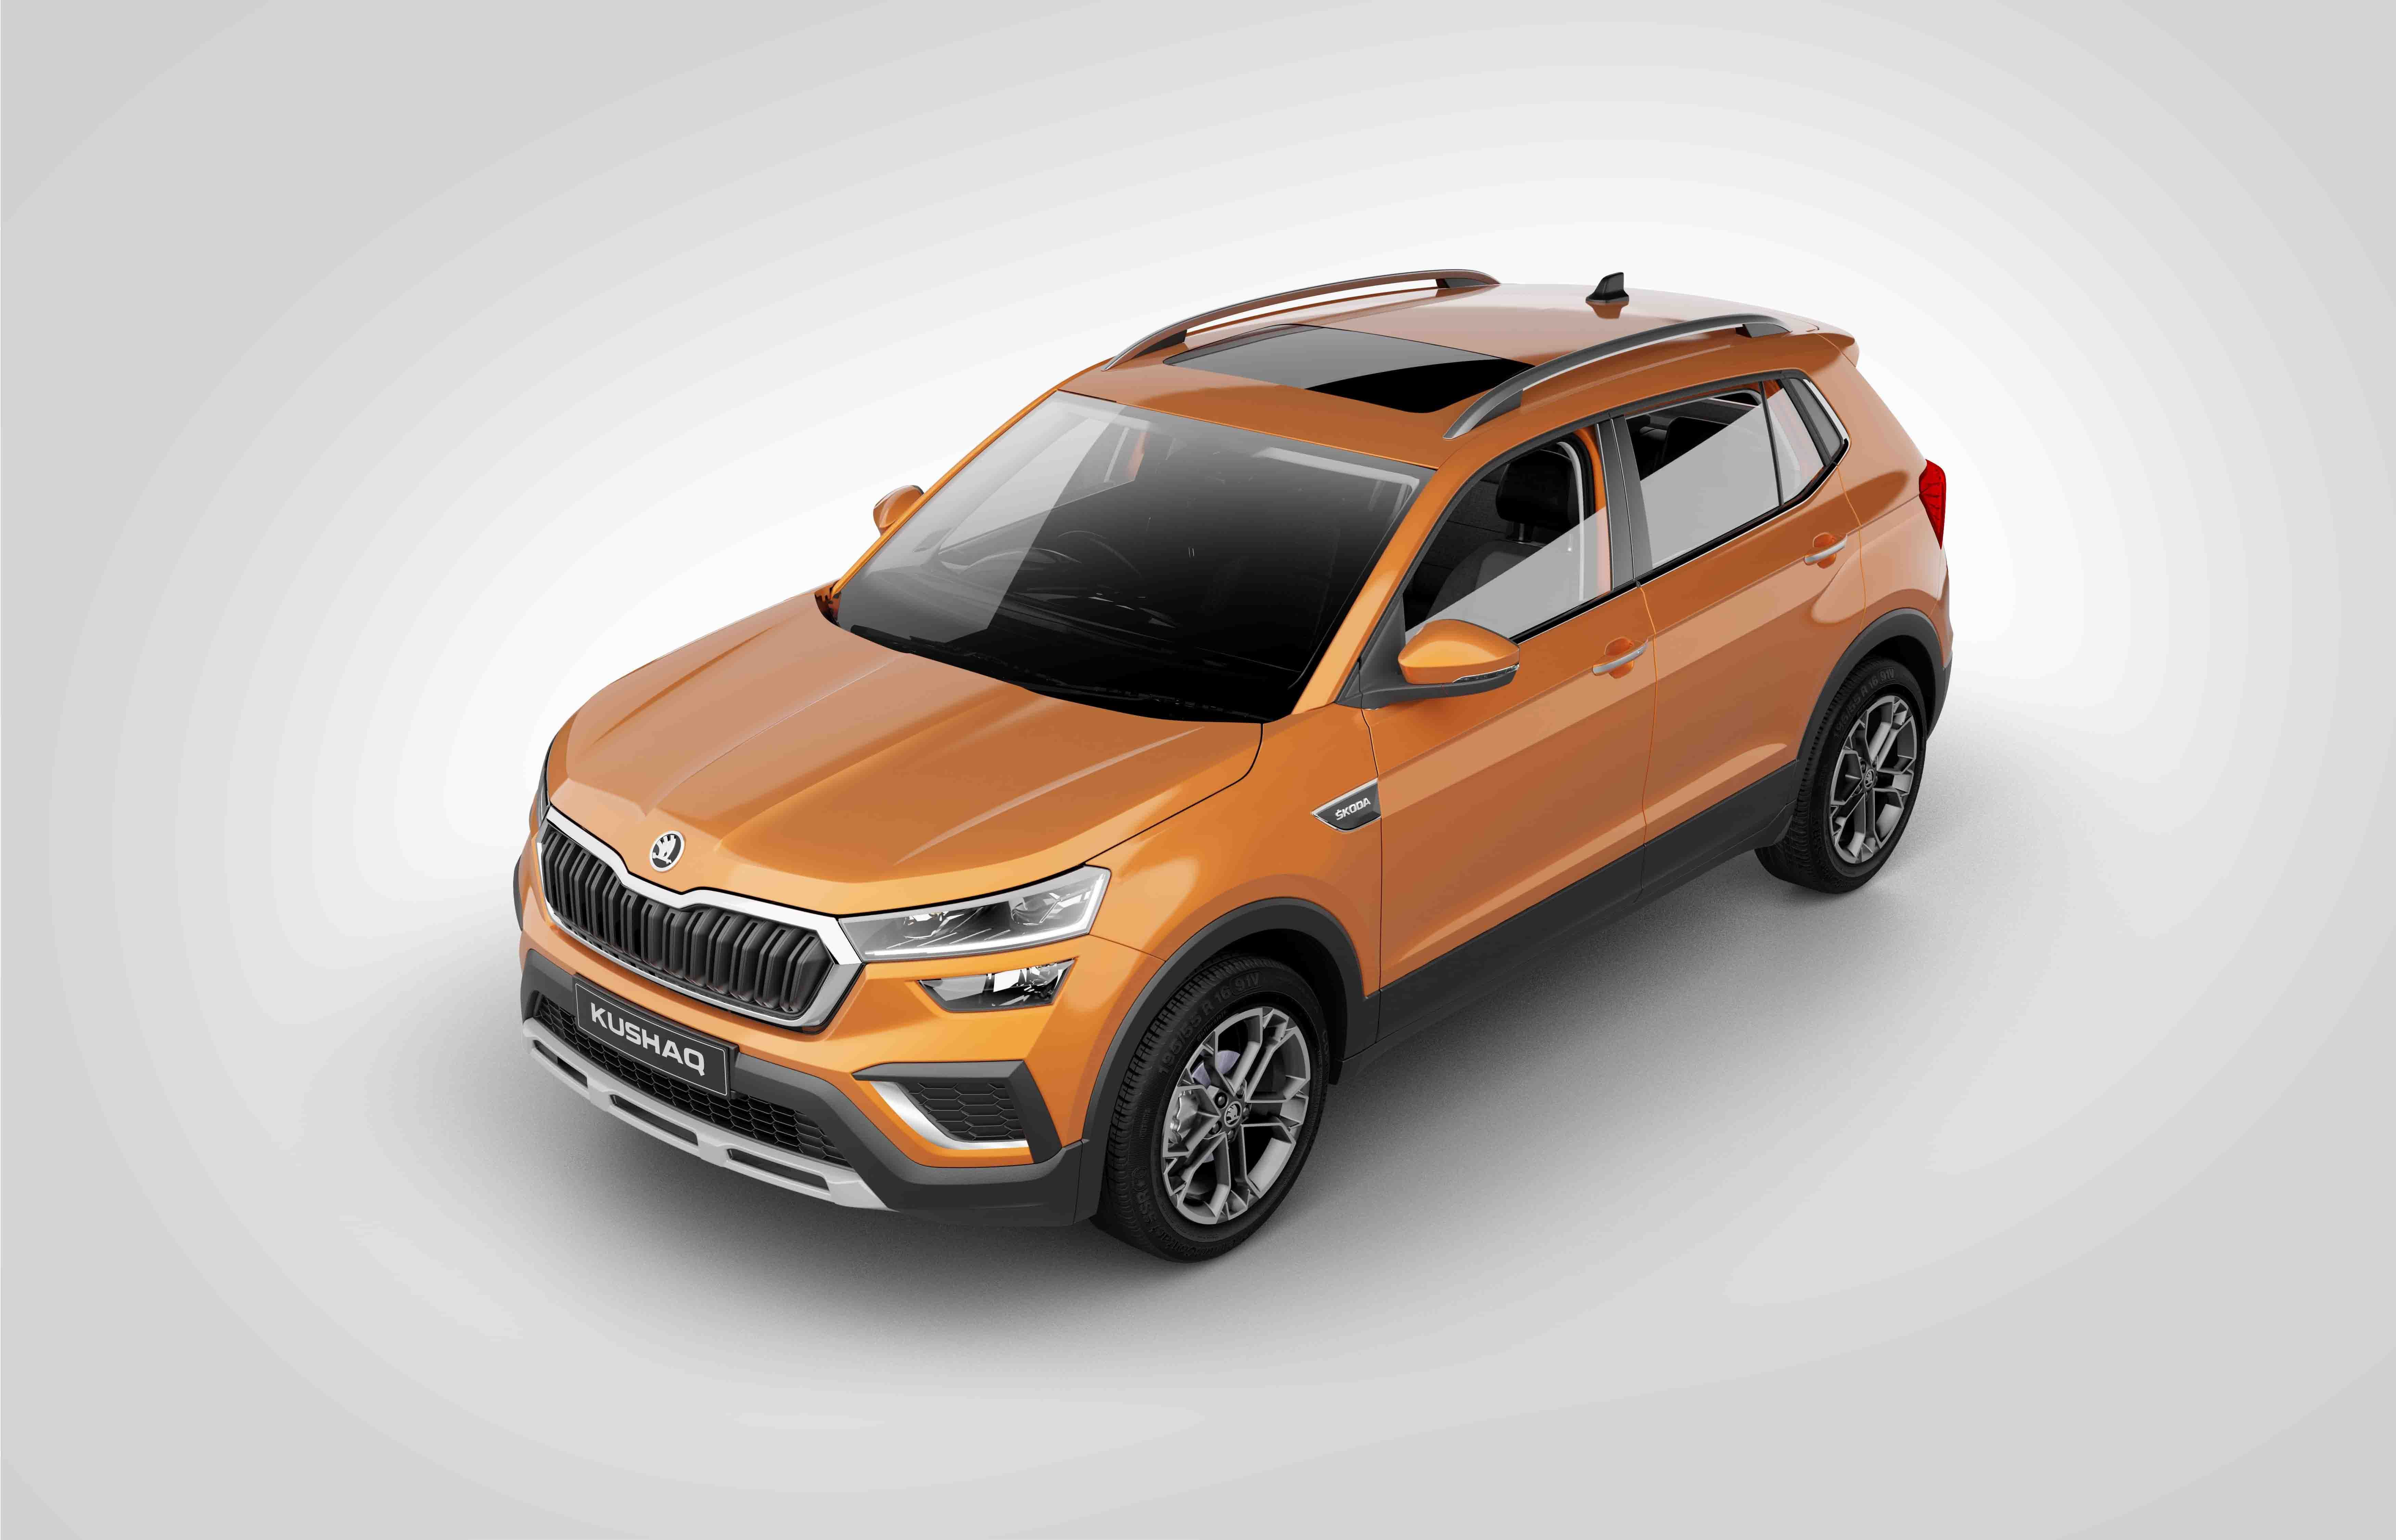 SKODA KUSHAQ launched in India at a starting Price of Rs. 10.49 lacs